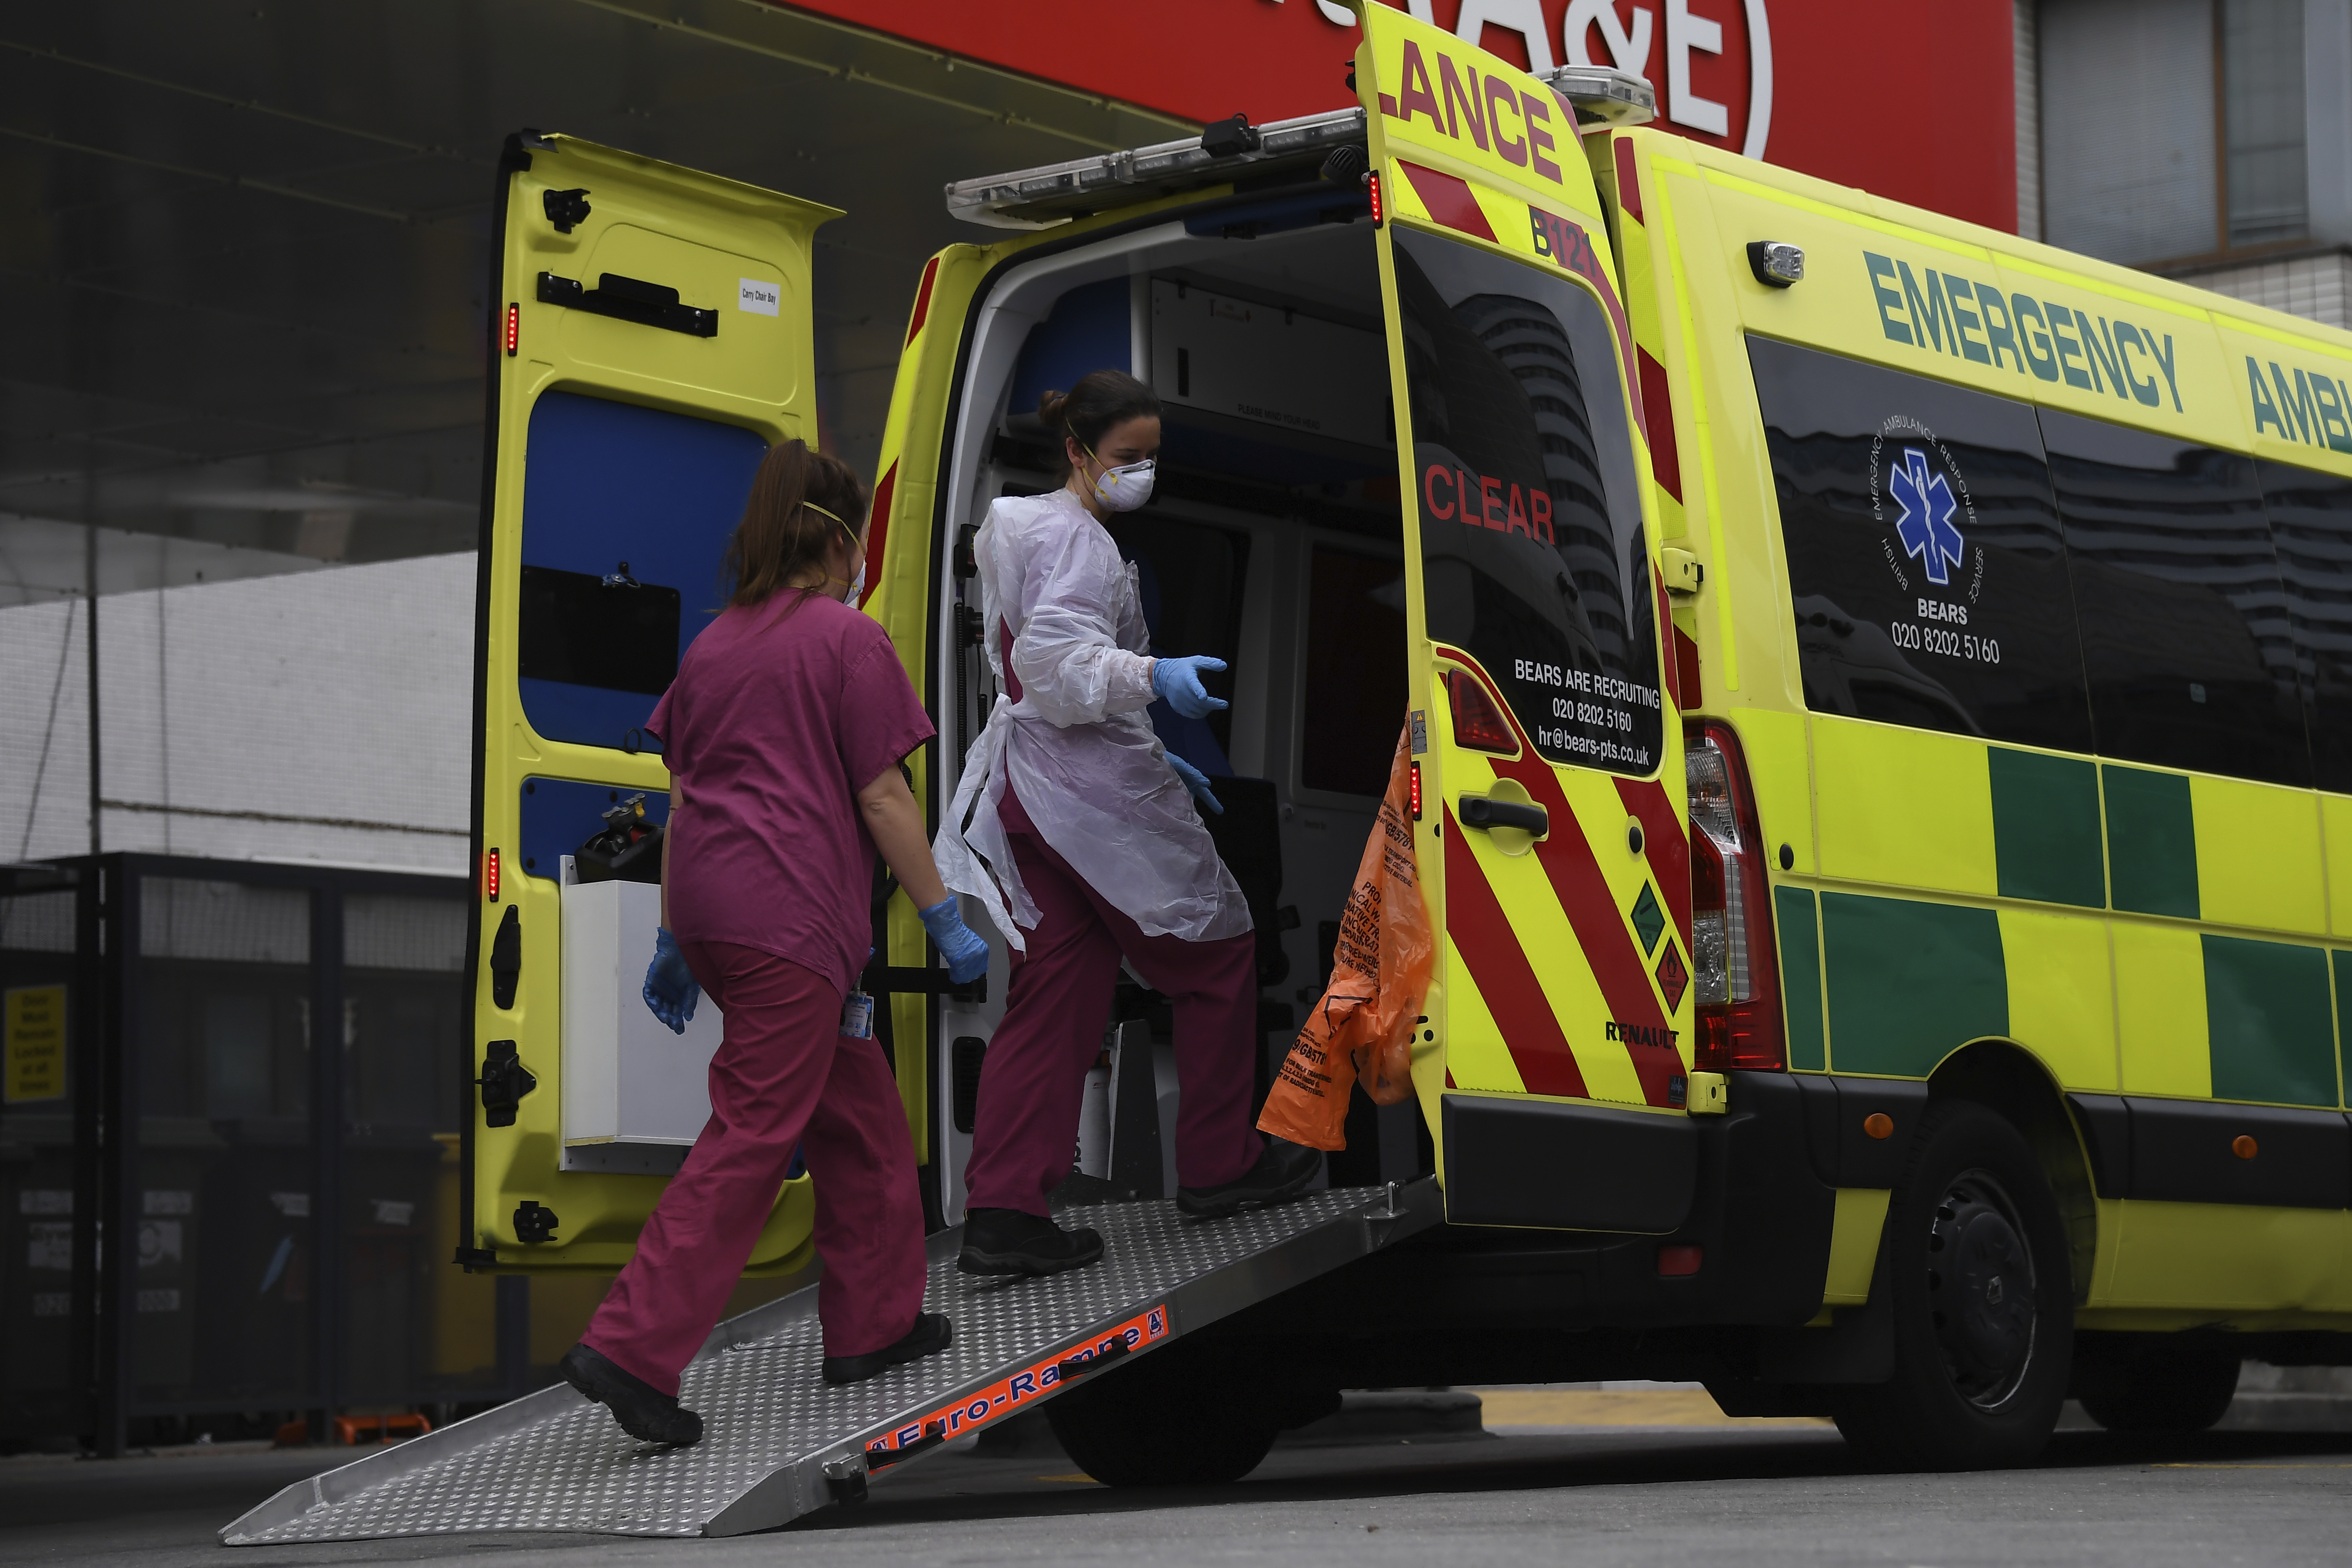 Medical workers clean an ambulance at St Thomas' Hospital, one of the many hospitals dealing with Coronavirus patients in London, Wednesday, April 1, 2020. The new coronavirus causes mild or moderate symptoms for most people, but for some, especially older adults and people with existing health problems, it can cause more severe illness or death.(AP Photo/Alberto Pezzali)